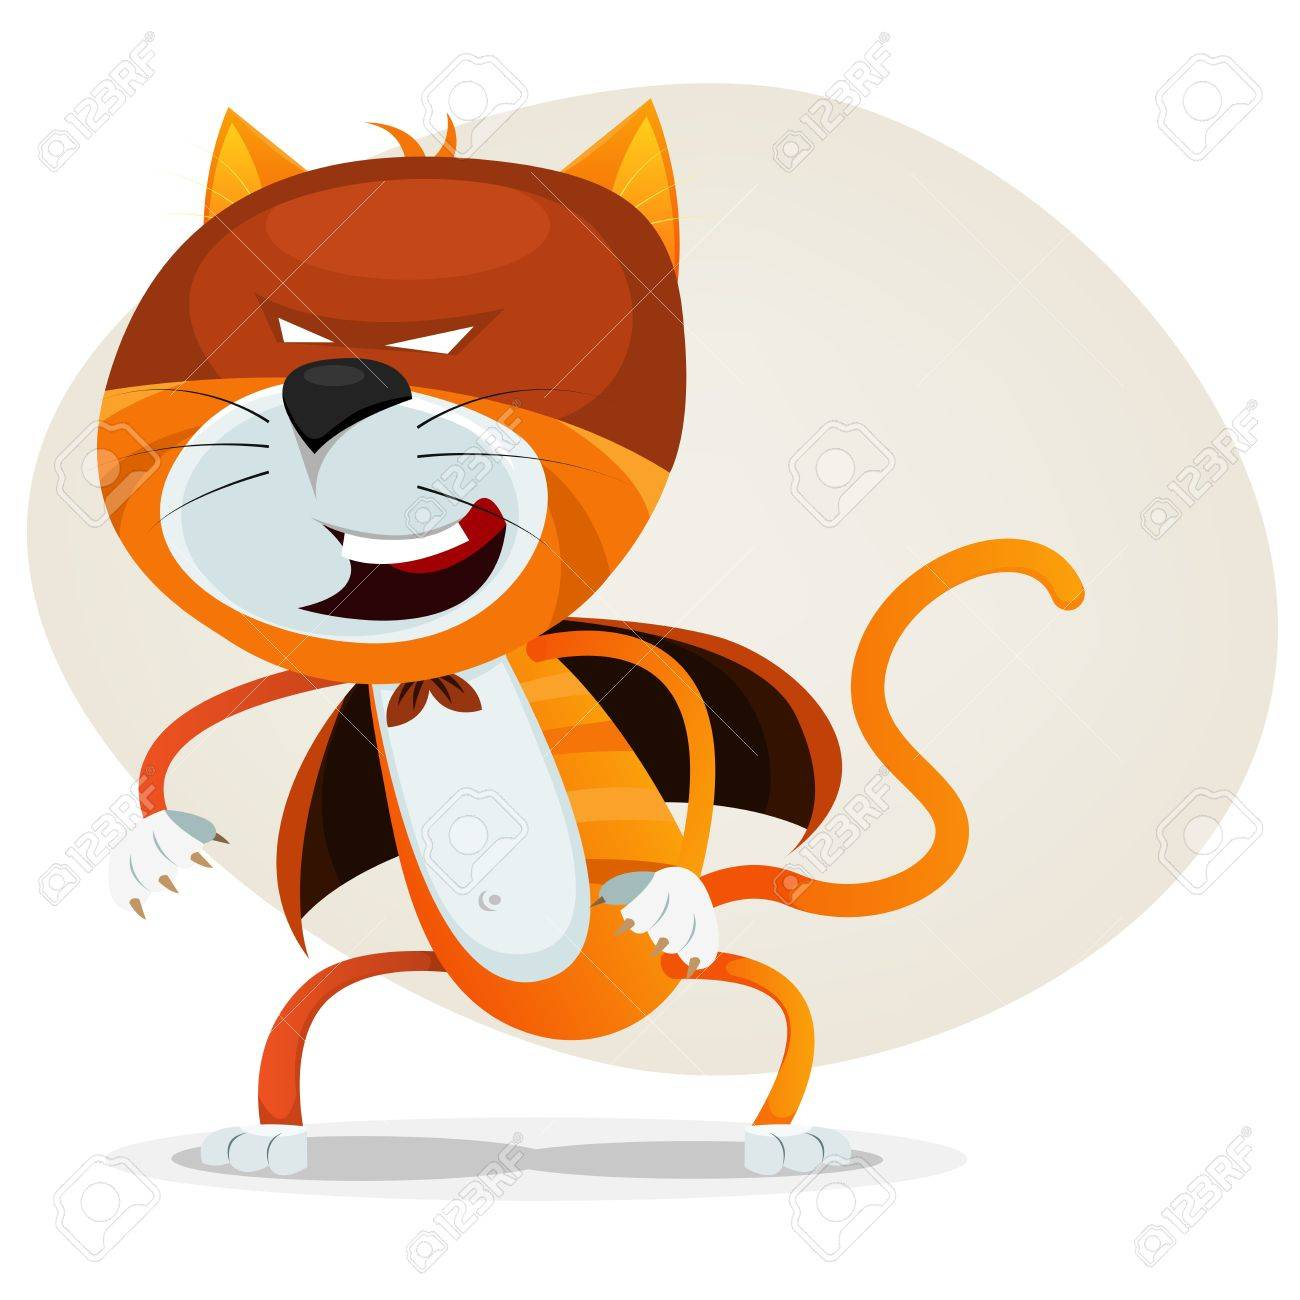 Illustration of a funny cartoon super cat animal character with